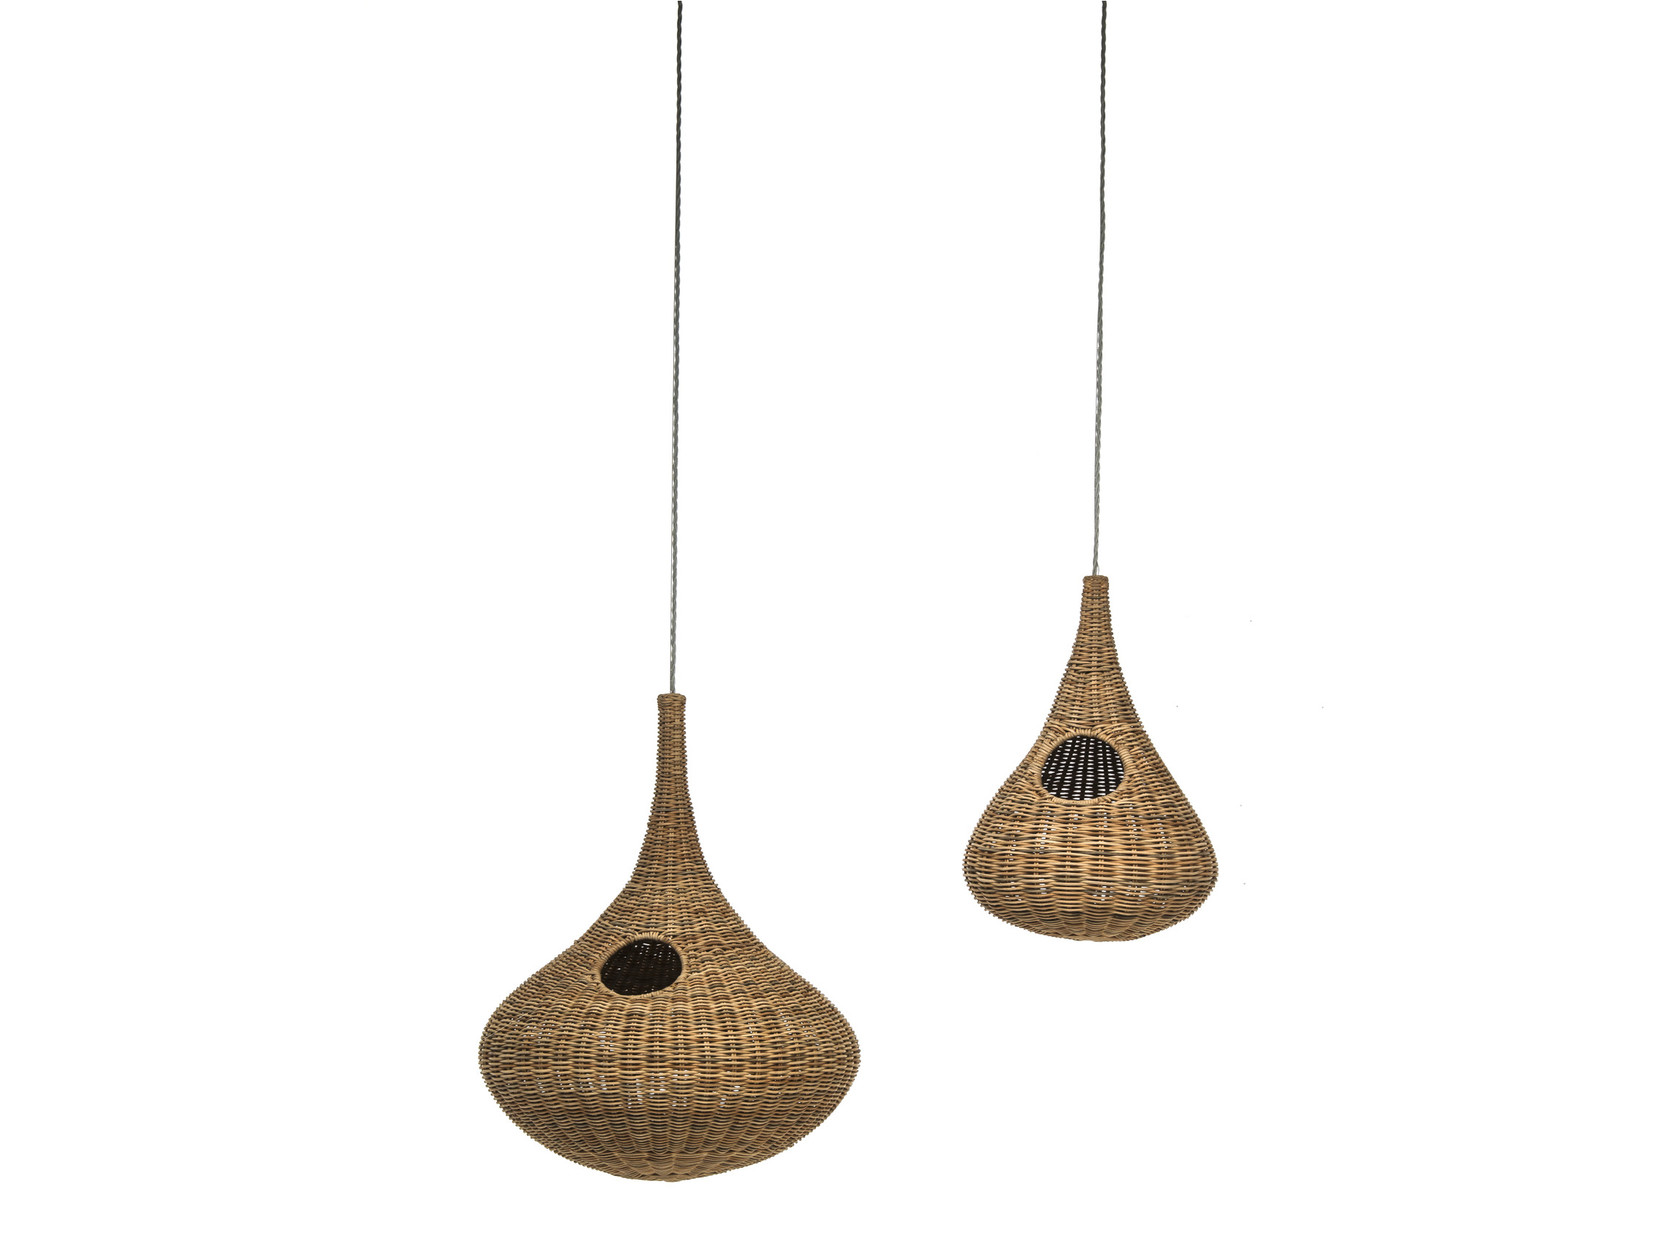 Spin 95 Pendant Lamp - Suspension lamp in natural melange rattan core with wiring max.power 18 W, 220 Volt. Electrical cable length of the lamp is 250 cm and the steel cable length is 200 cm. | Matter of Stuff